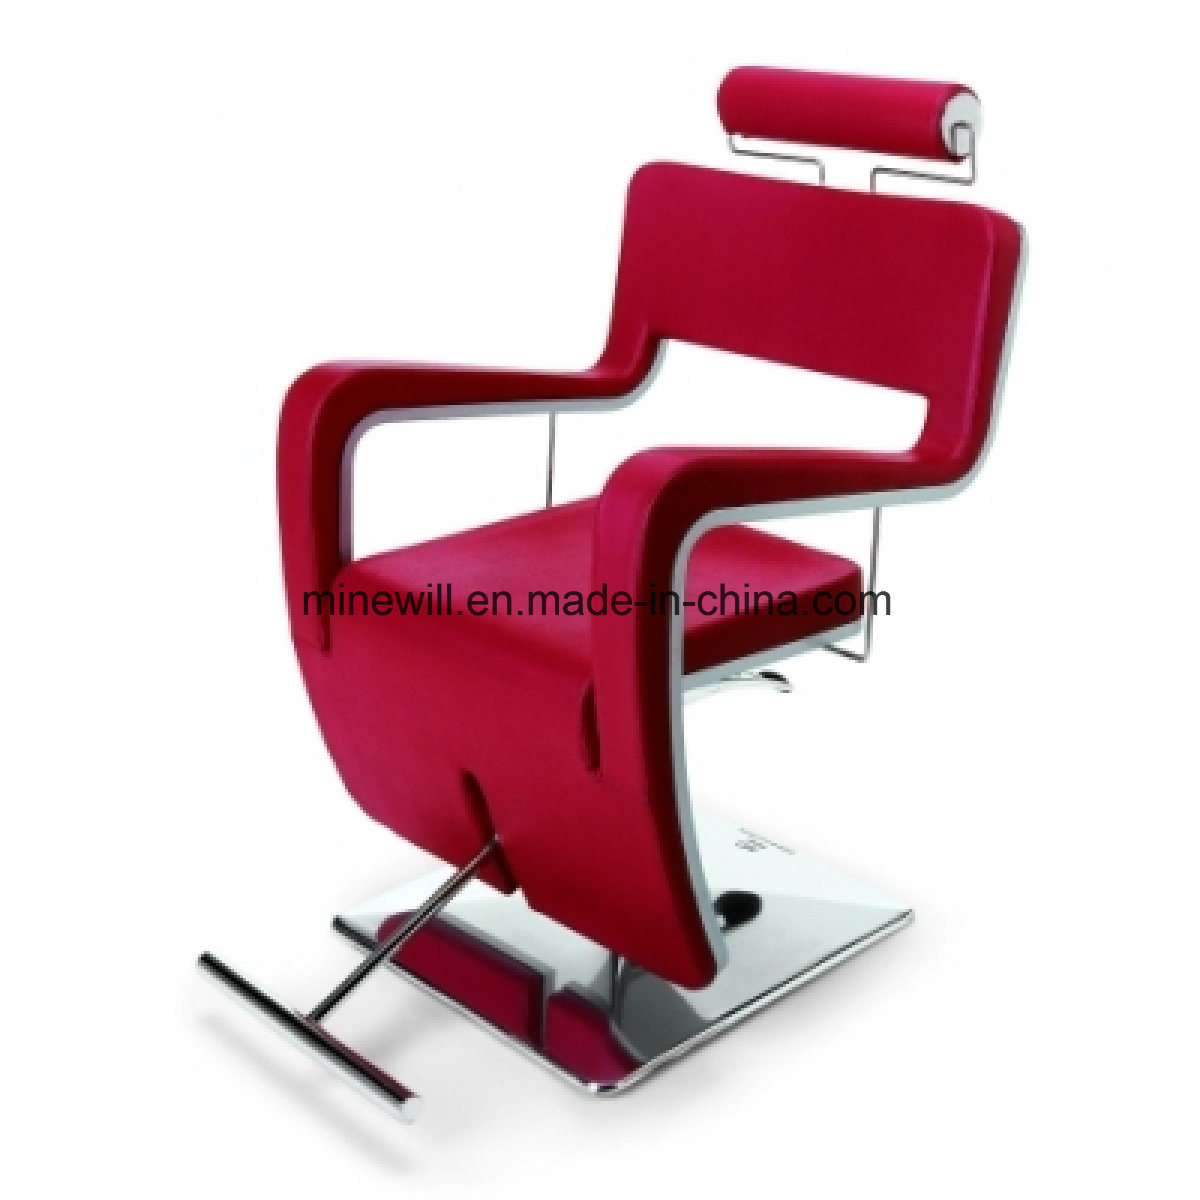 Red Barber Chair Hot Item High Quality Red Salon Barber Chair With T Footrest Styling Chair